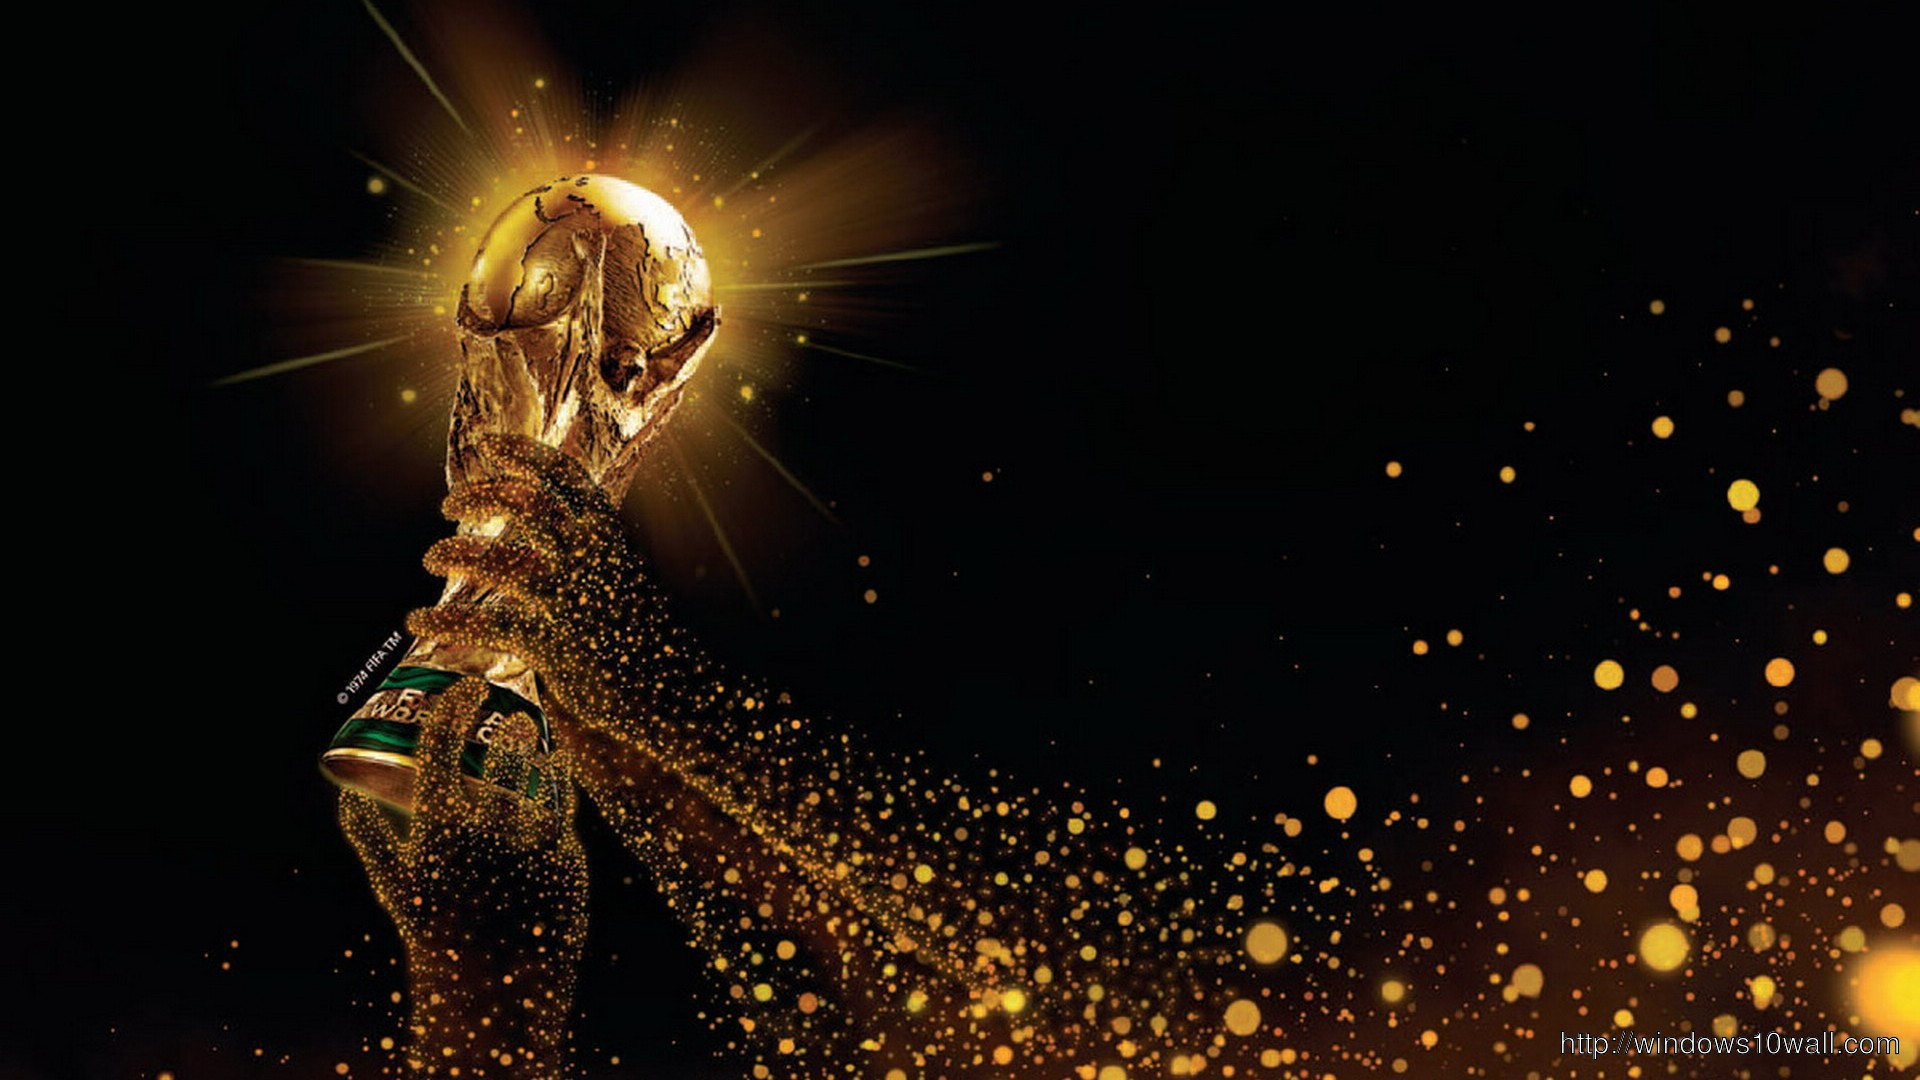 who won the football world cup in 2017